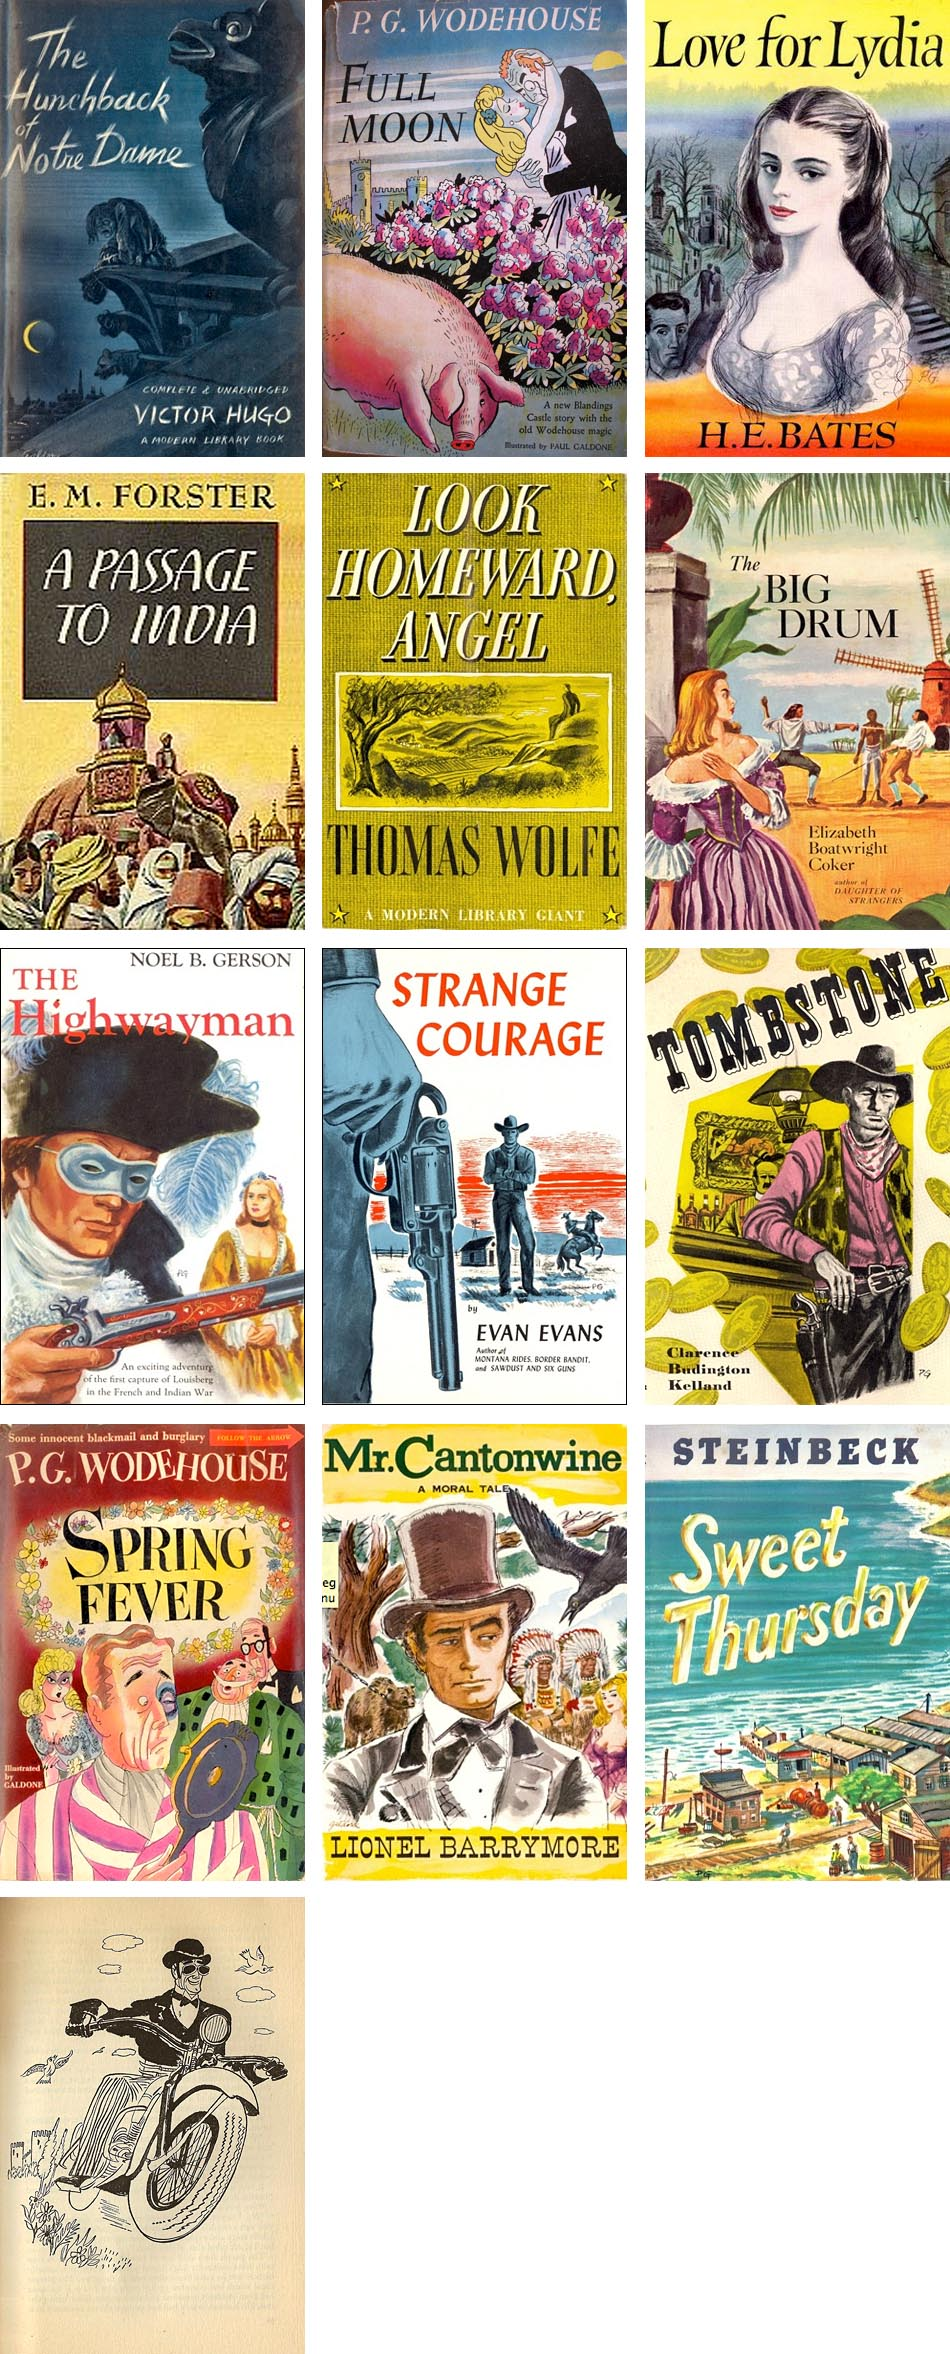 Book jacket covers by Paul Galdone